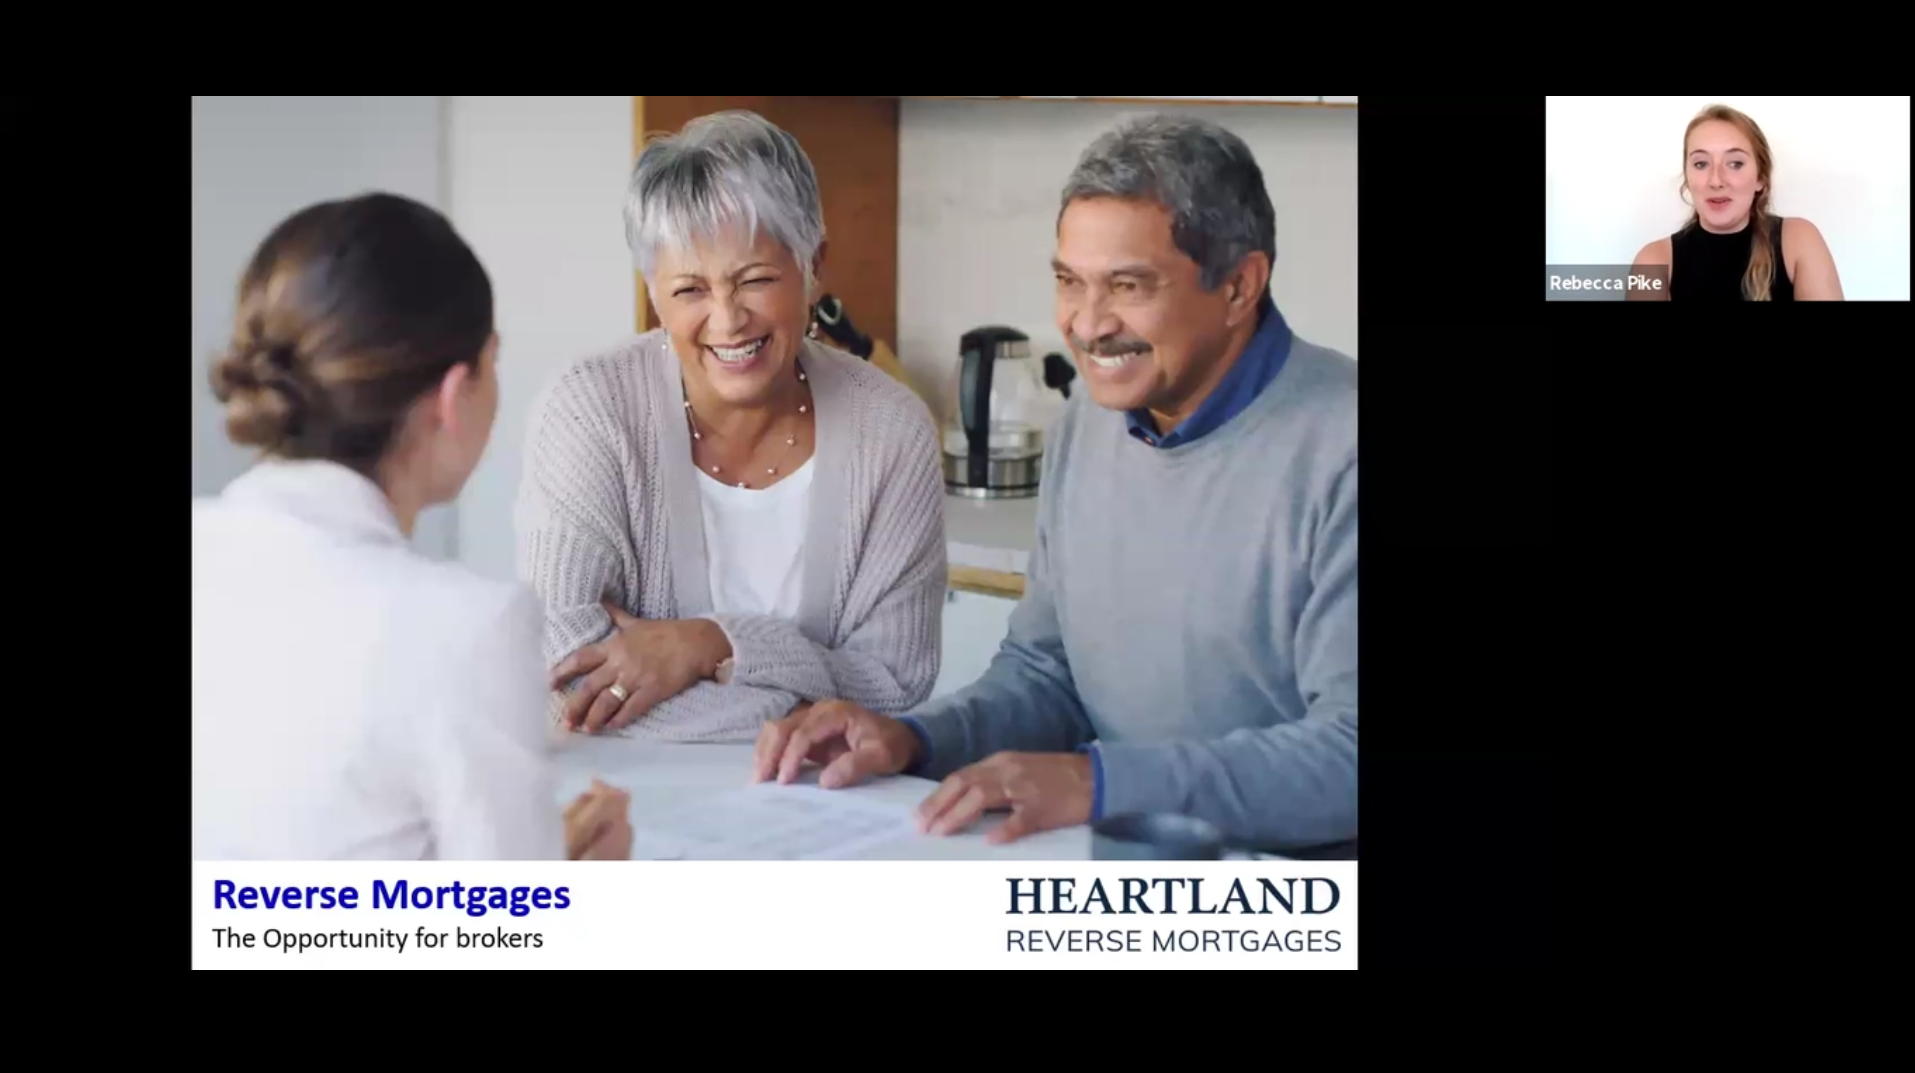 How to diversify and grow - learn how your clients could benefit from a Heartland reverse mortgage